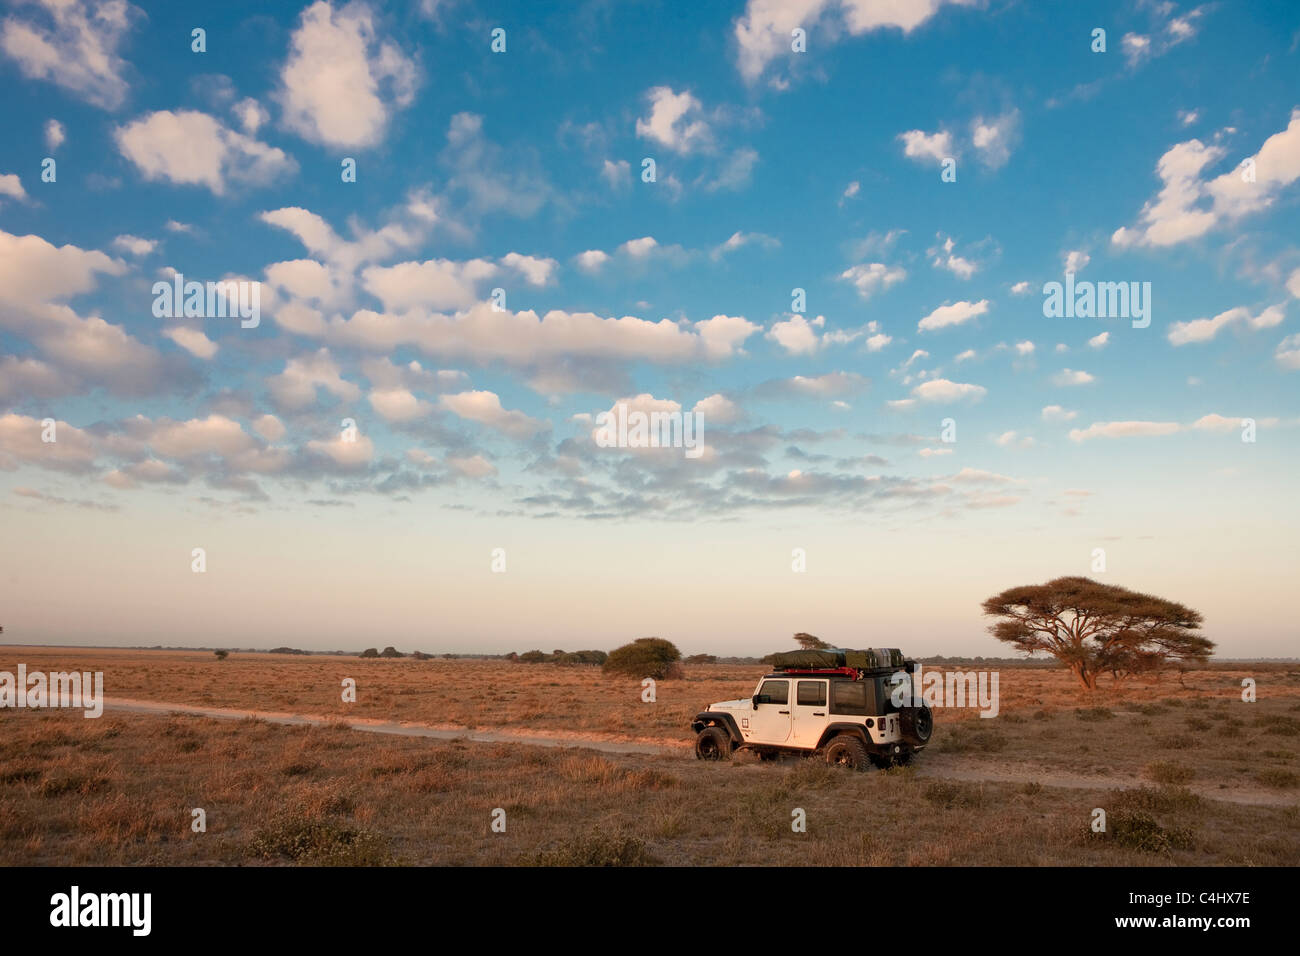 Off Road Vehicle in Deception Valley, Central Kalahari Game Reserve, Botswana - Stock Image